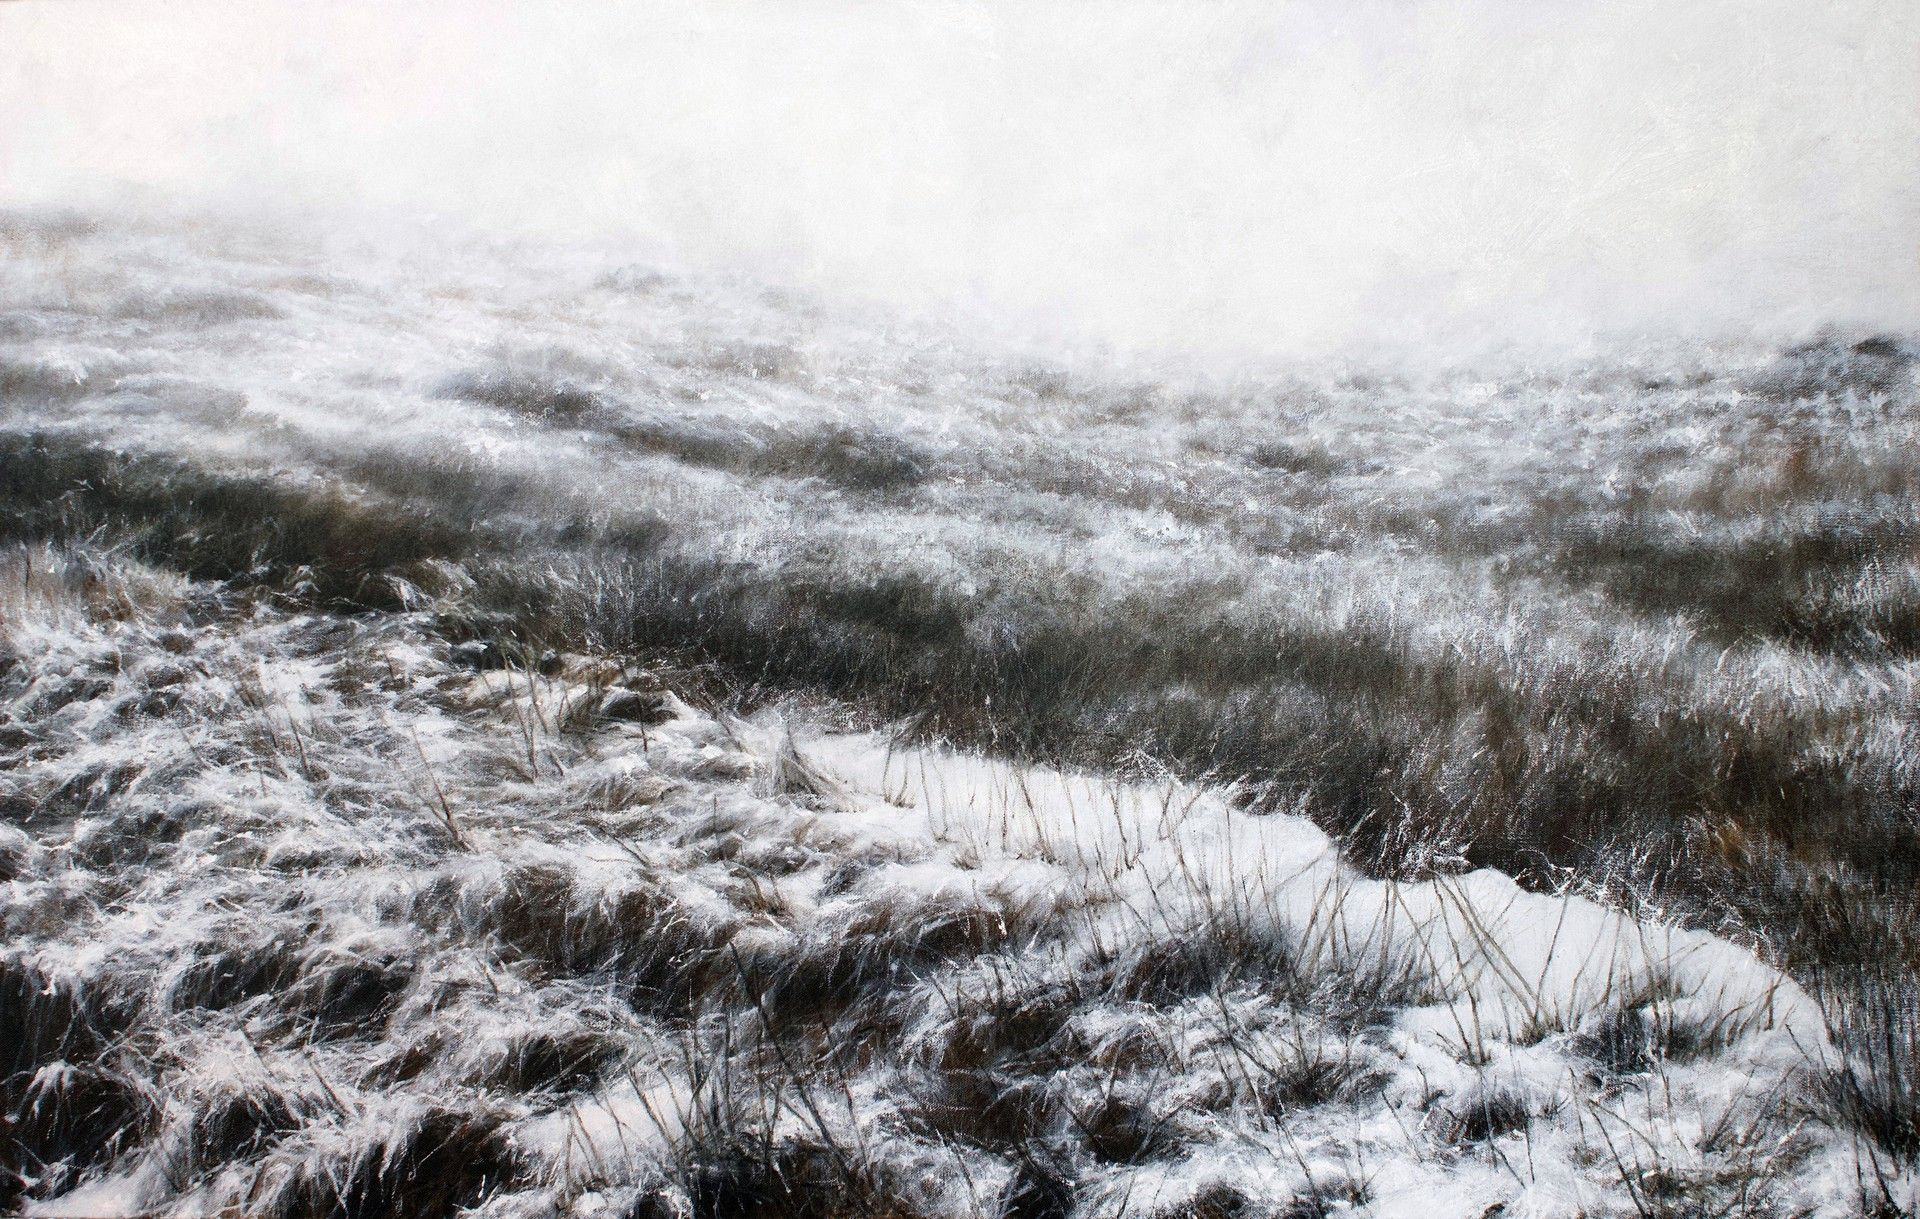 Cape Spear in the Snow by Lisa Lebofsky